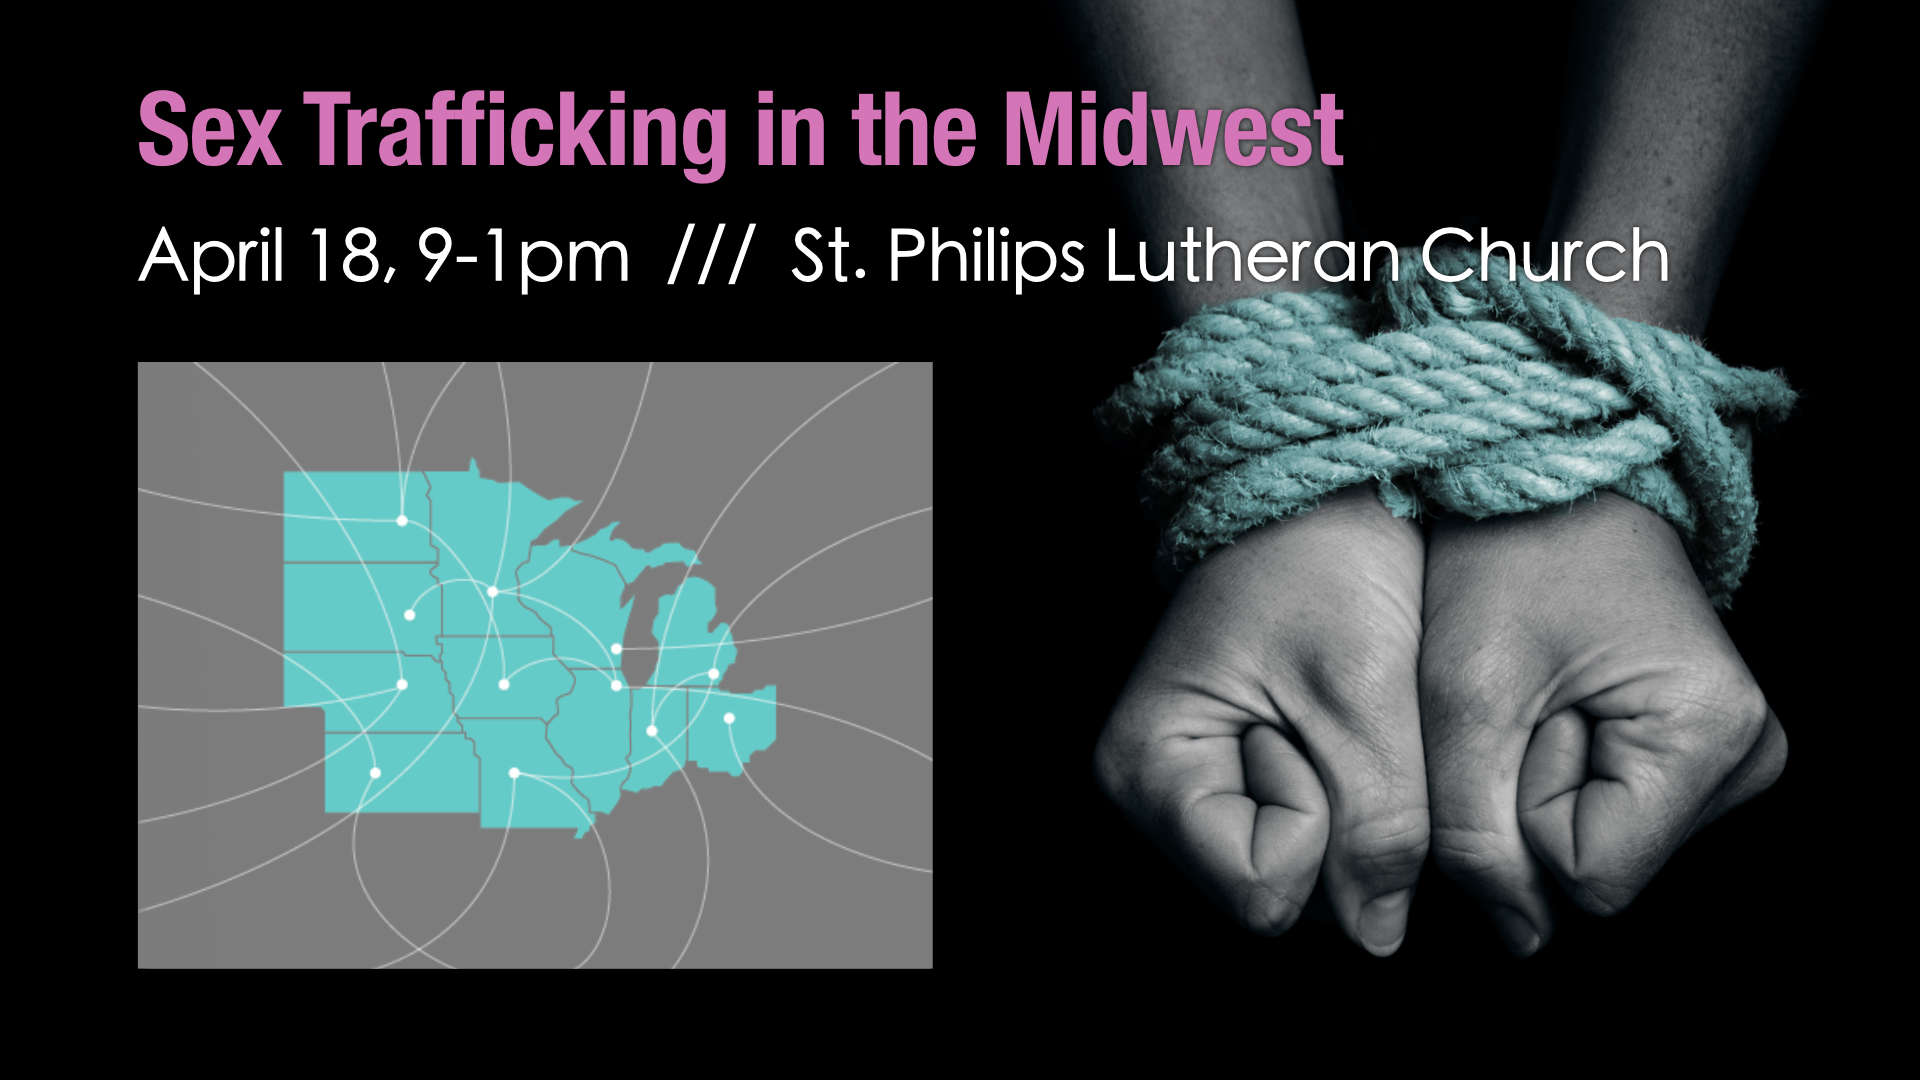 Sex Trafficking in the Midwest Seminar